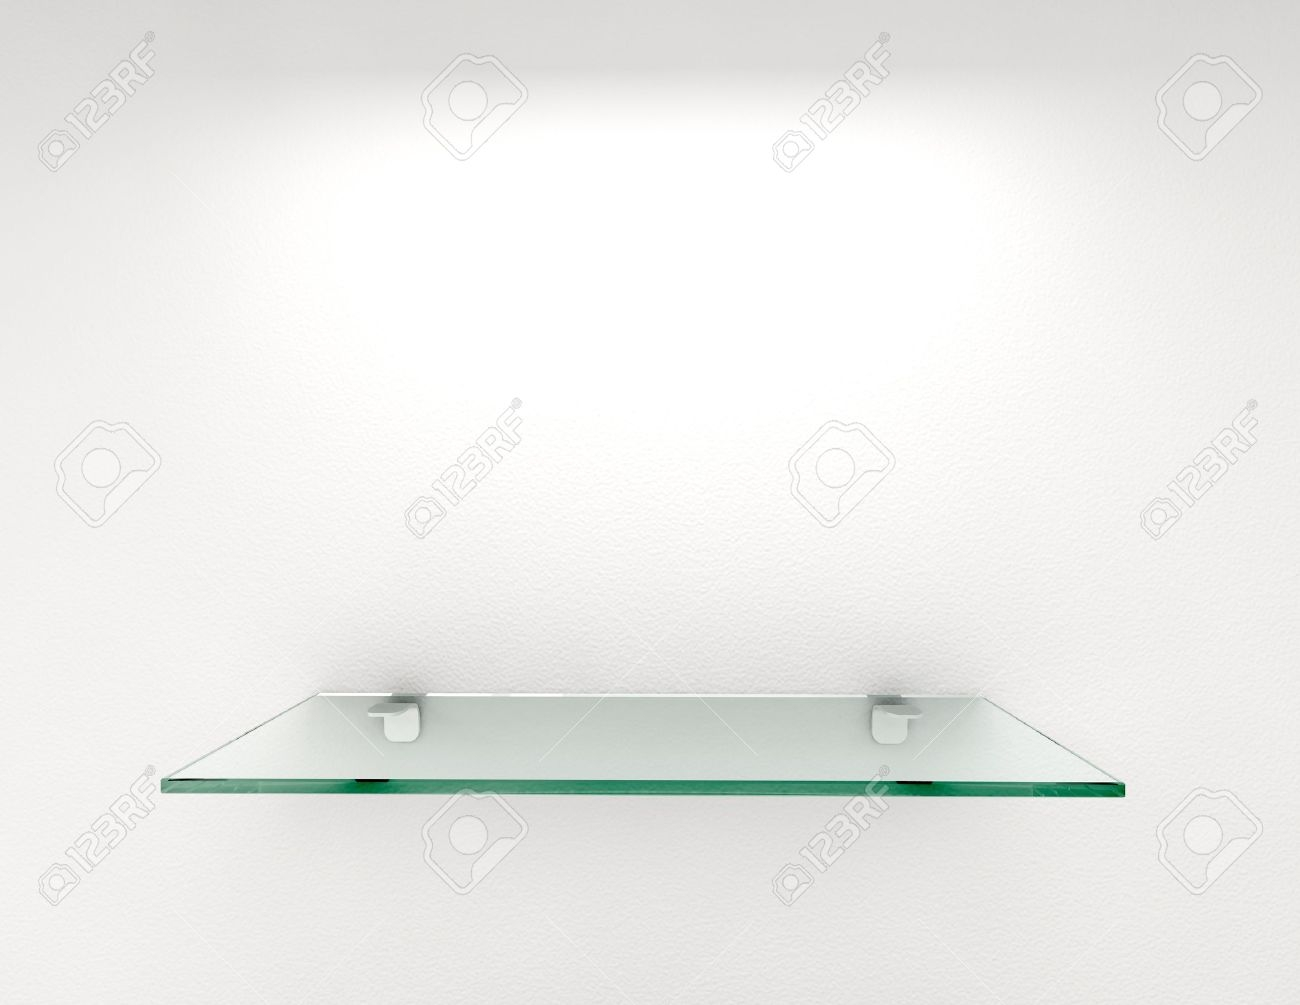 Floating Glass Shelf Kits Buy Decorative Glass Online The For With Regard  To Free Floating Glass